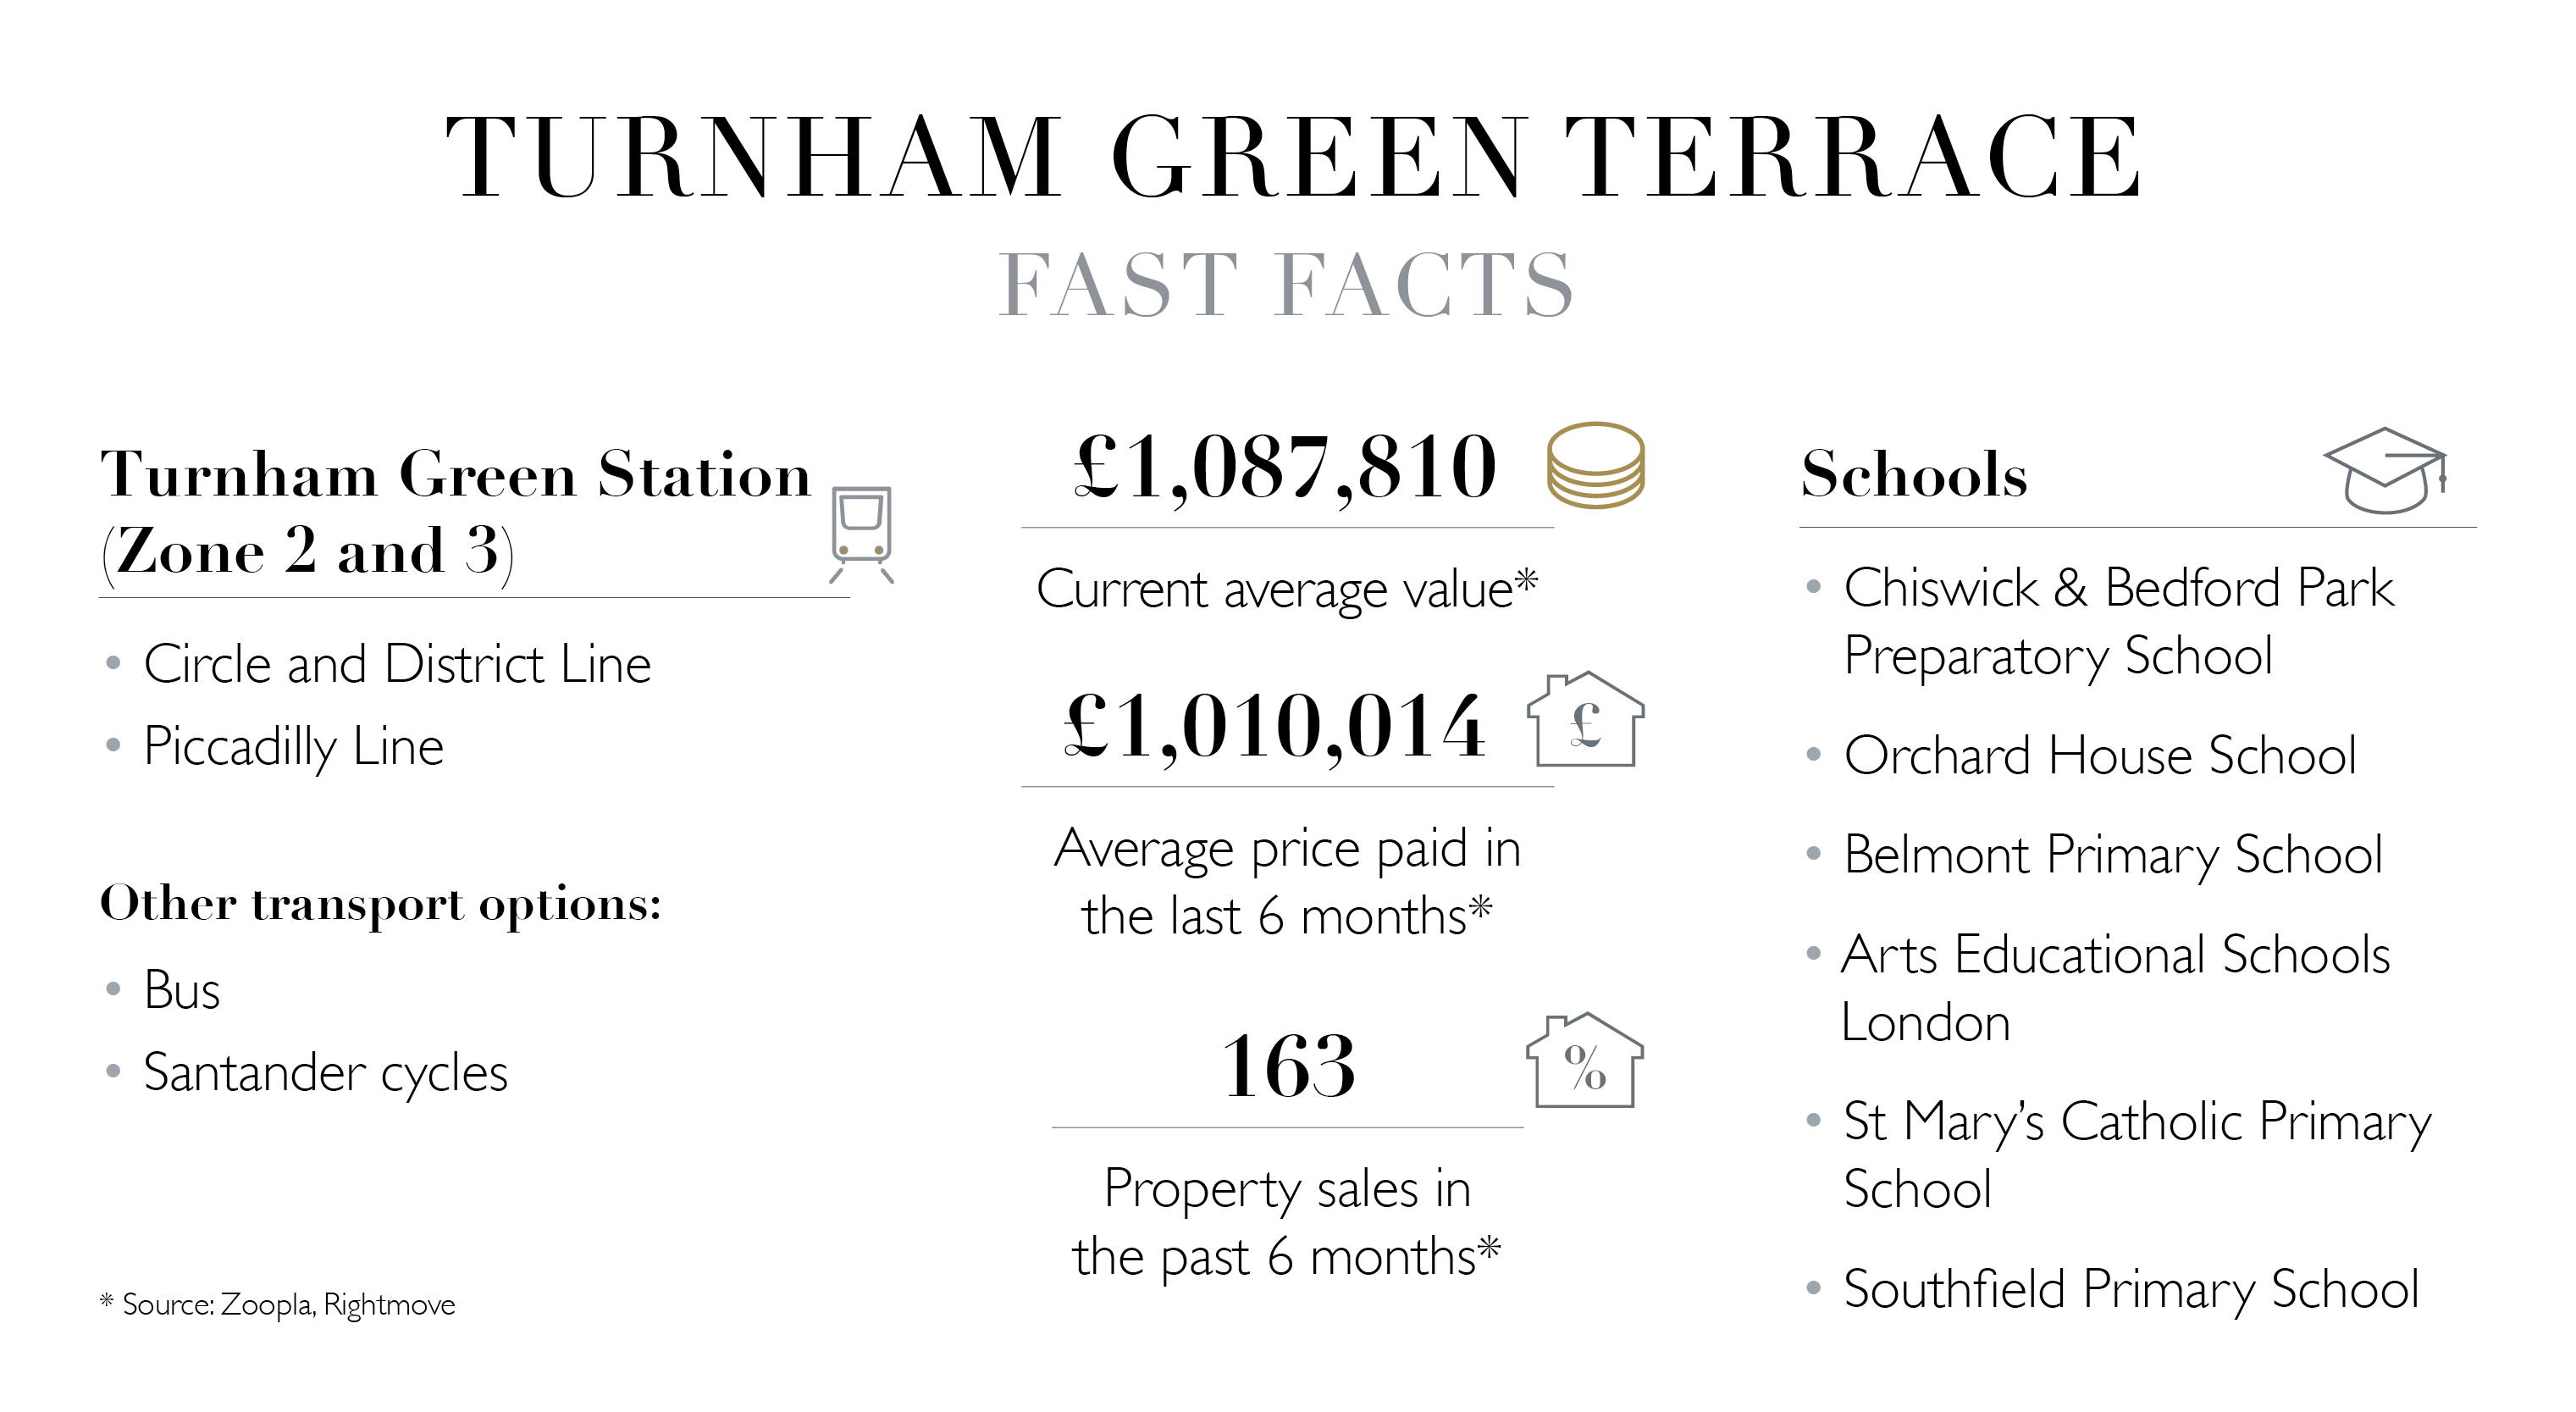 Turnham Green Terrace area guide - schools, house prices and transport